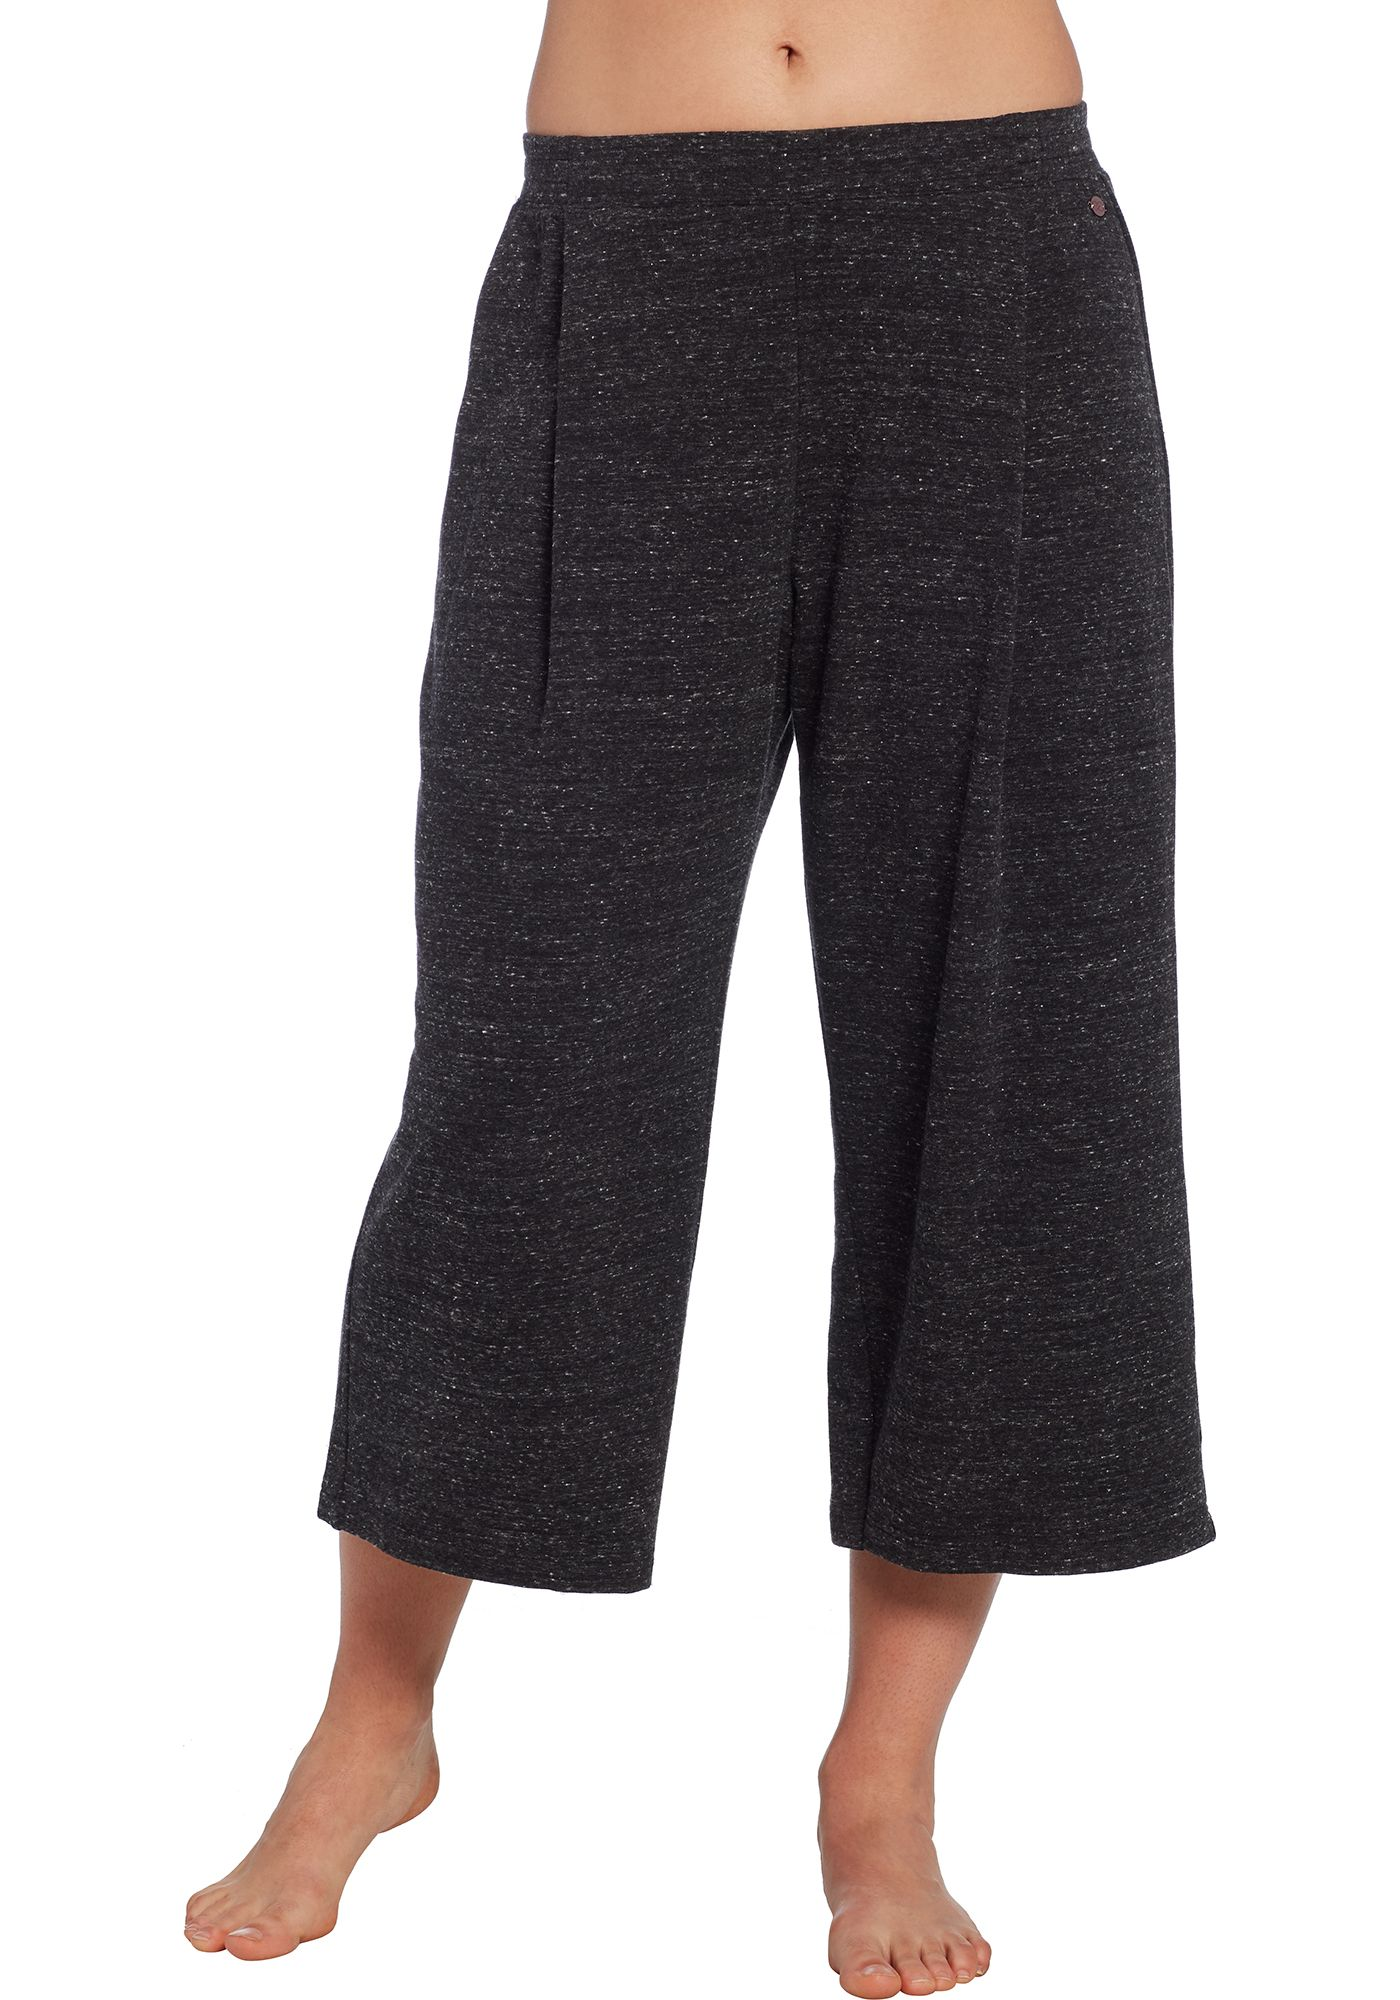 CALIA by Carrie Underwood Women's Effortless Wide Leg Cropped Culottes